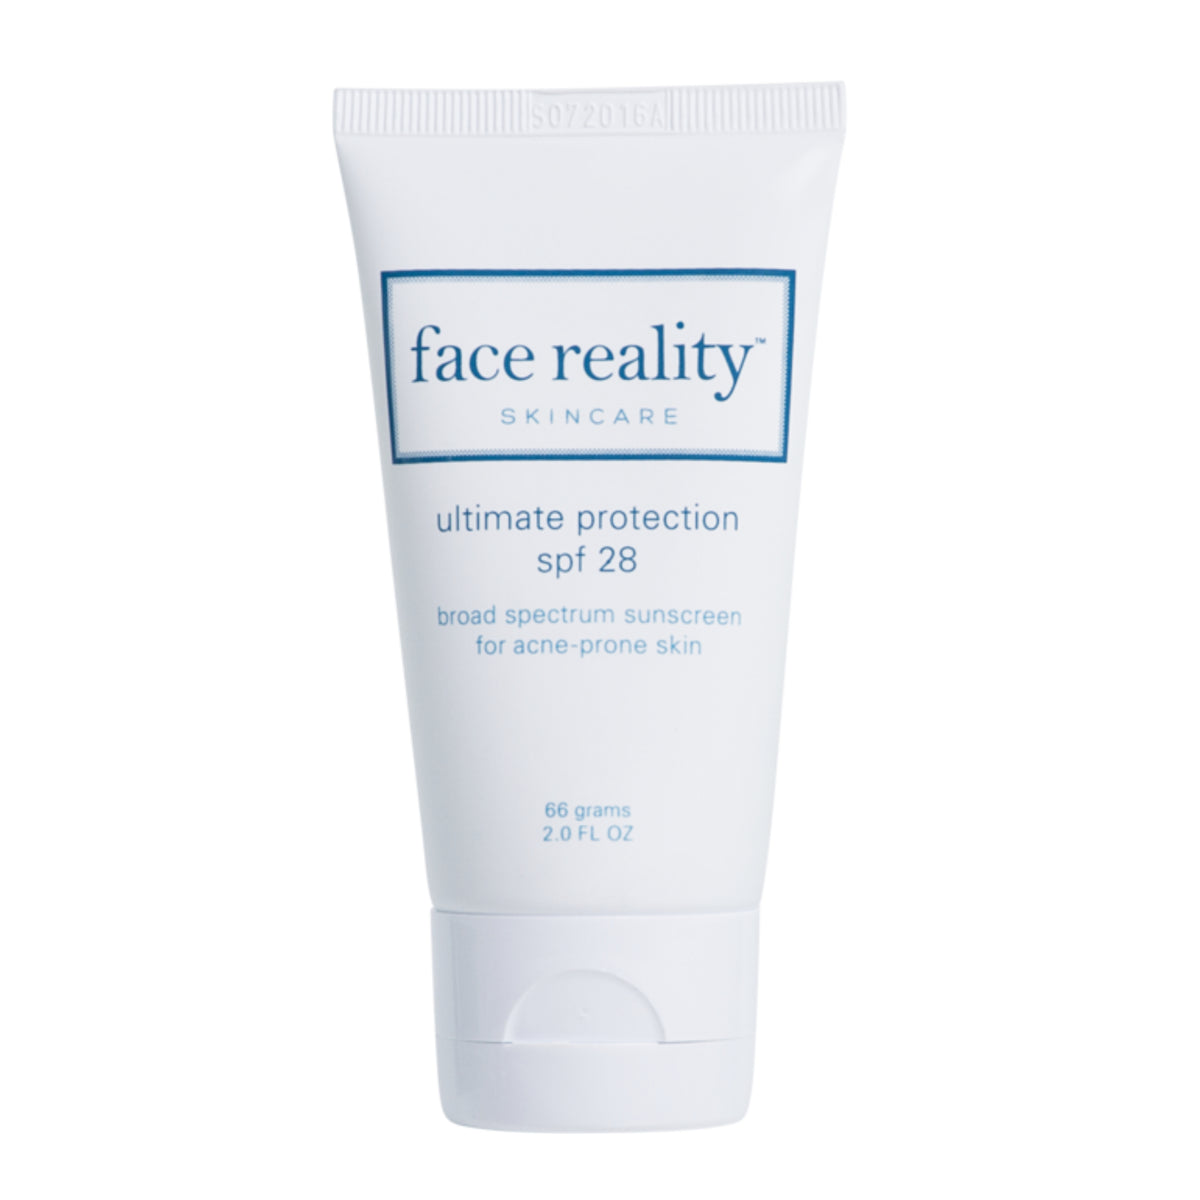 FACE REALITY - Ultimate Protection 28 - Beauty Nook